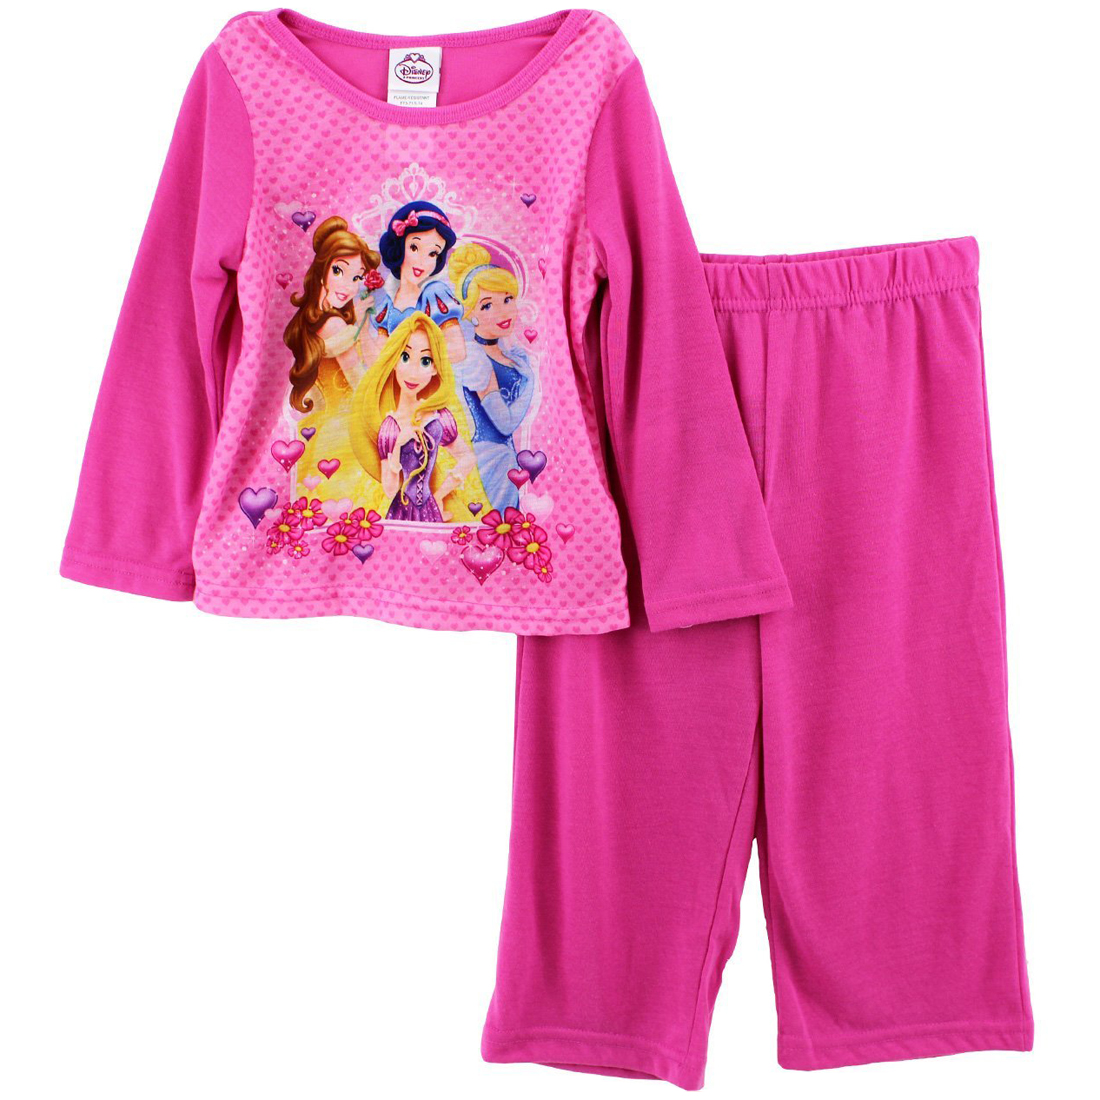 Disney Princess Baby Girls' 2 Piece Pink Pajama Pants Set at Sears.com